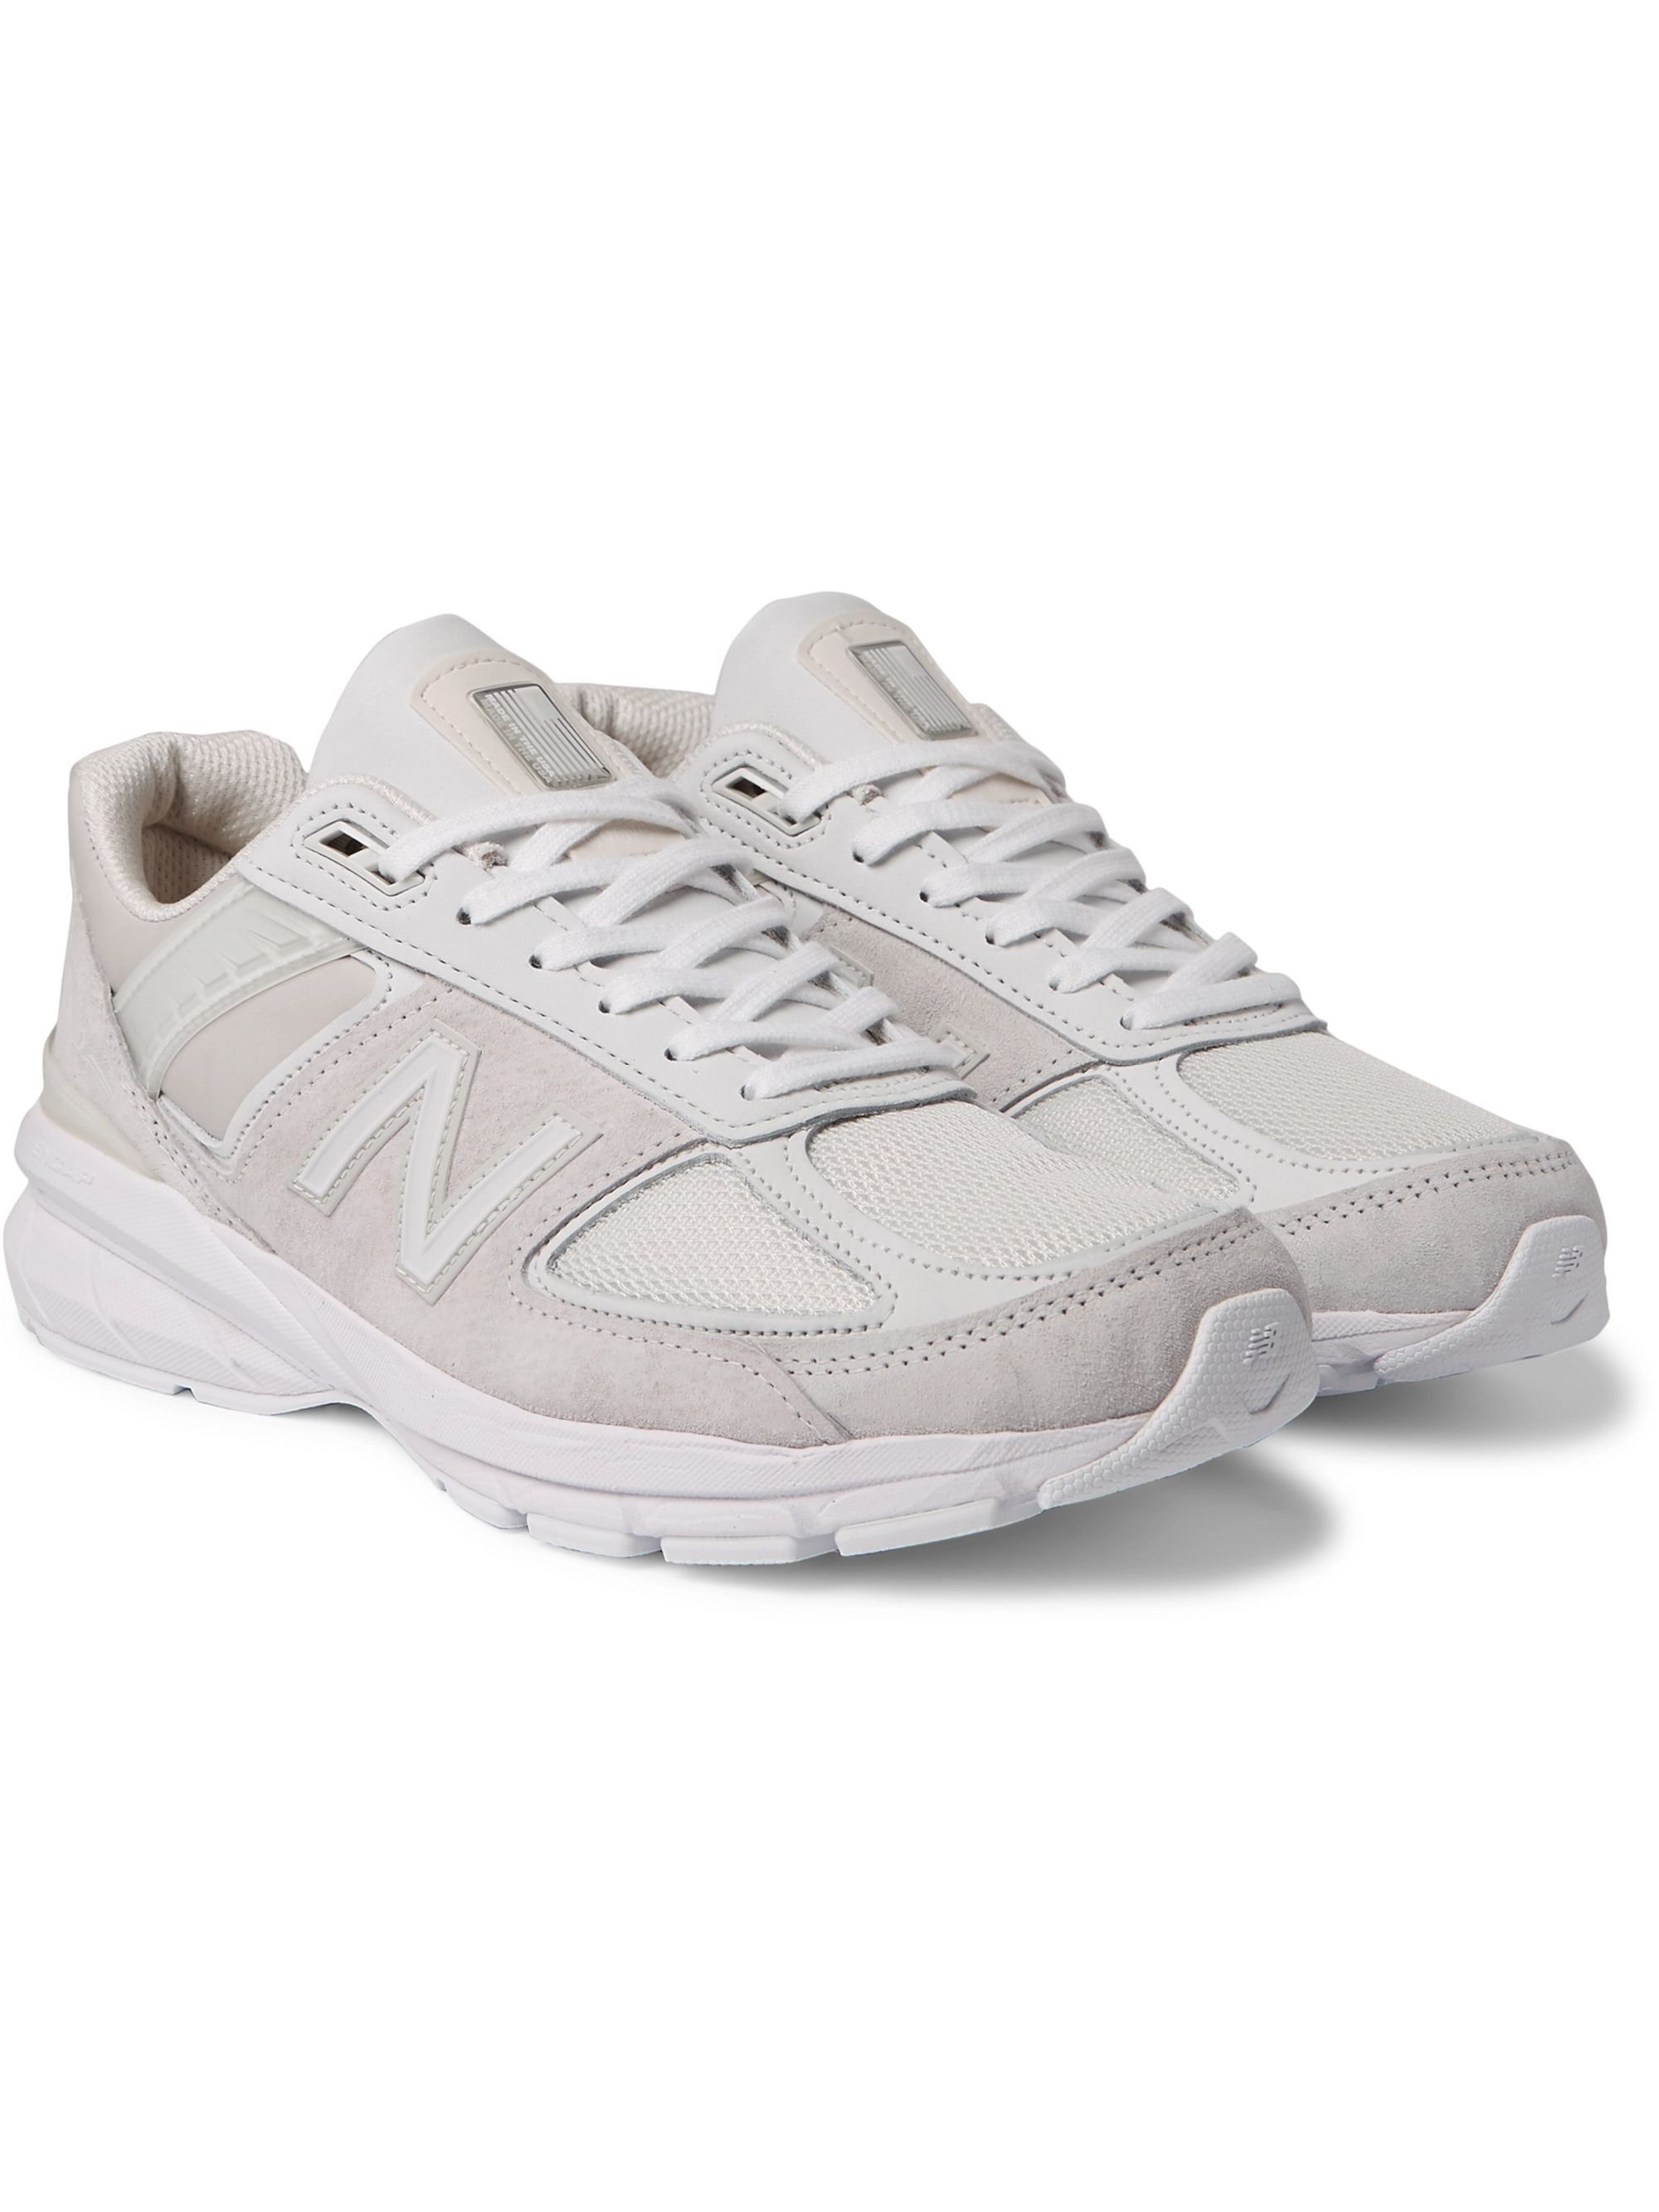 + New Balance 990 V5 Suede And Mesh Sneakers by Junya Watanabe